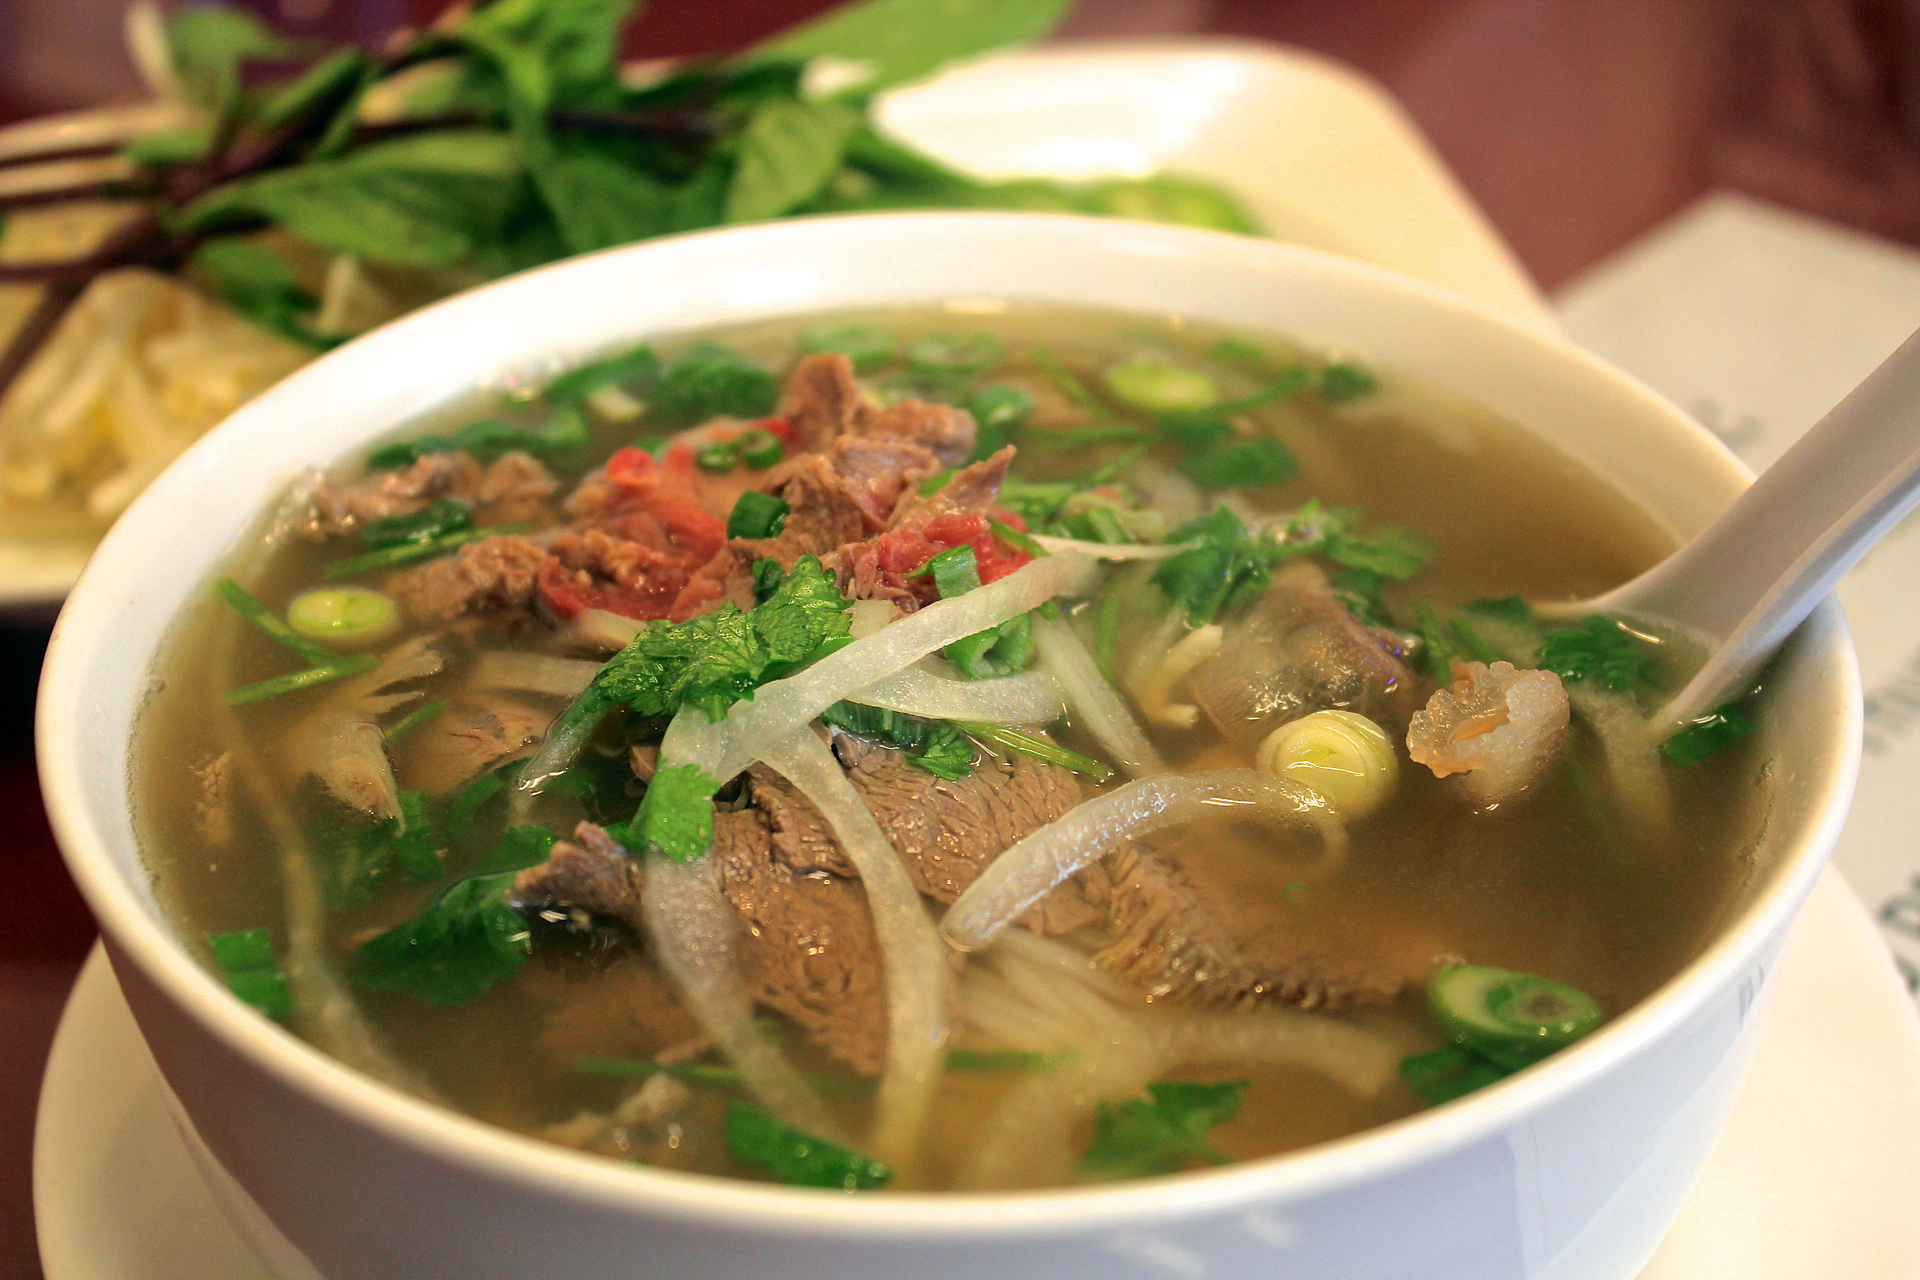 The Pho Gourmet with rare steak, lean brisket, flank, tendon and tripe.